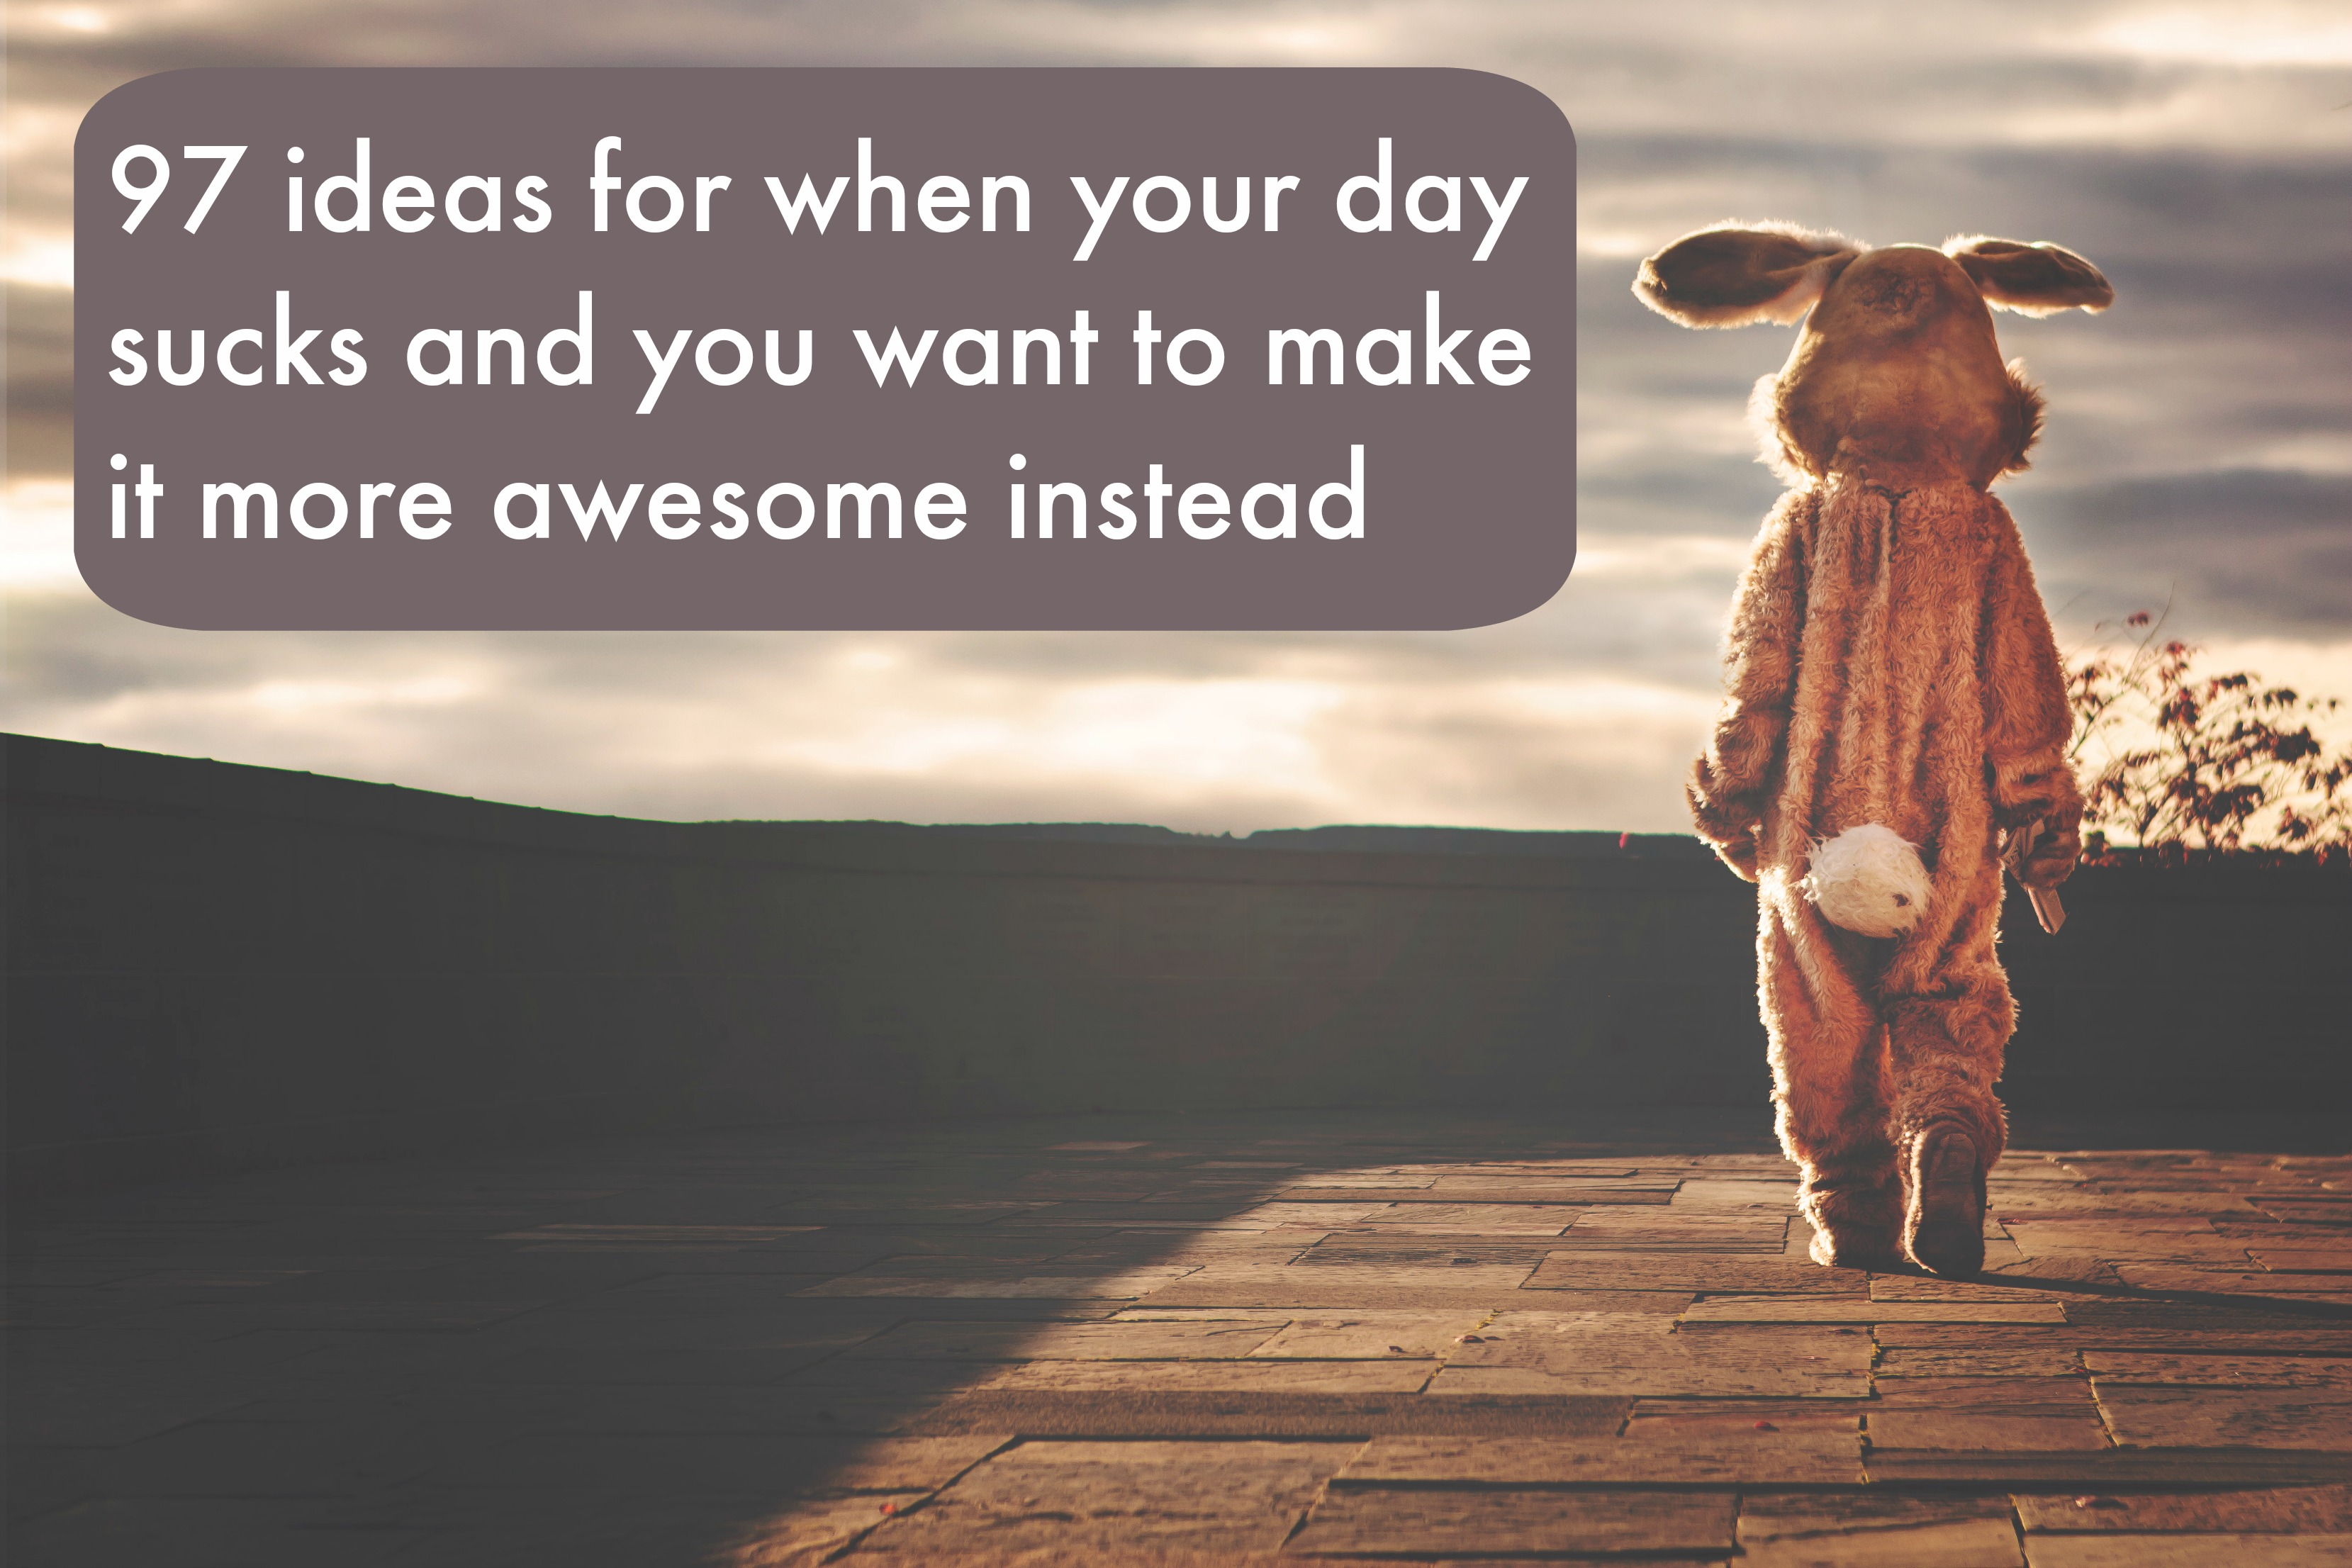 Having a bad day? Want to make it suck less and be more awesome instead? Read this: http://oneinfinitelife.com/ideas-for-when-your-day-sucks/